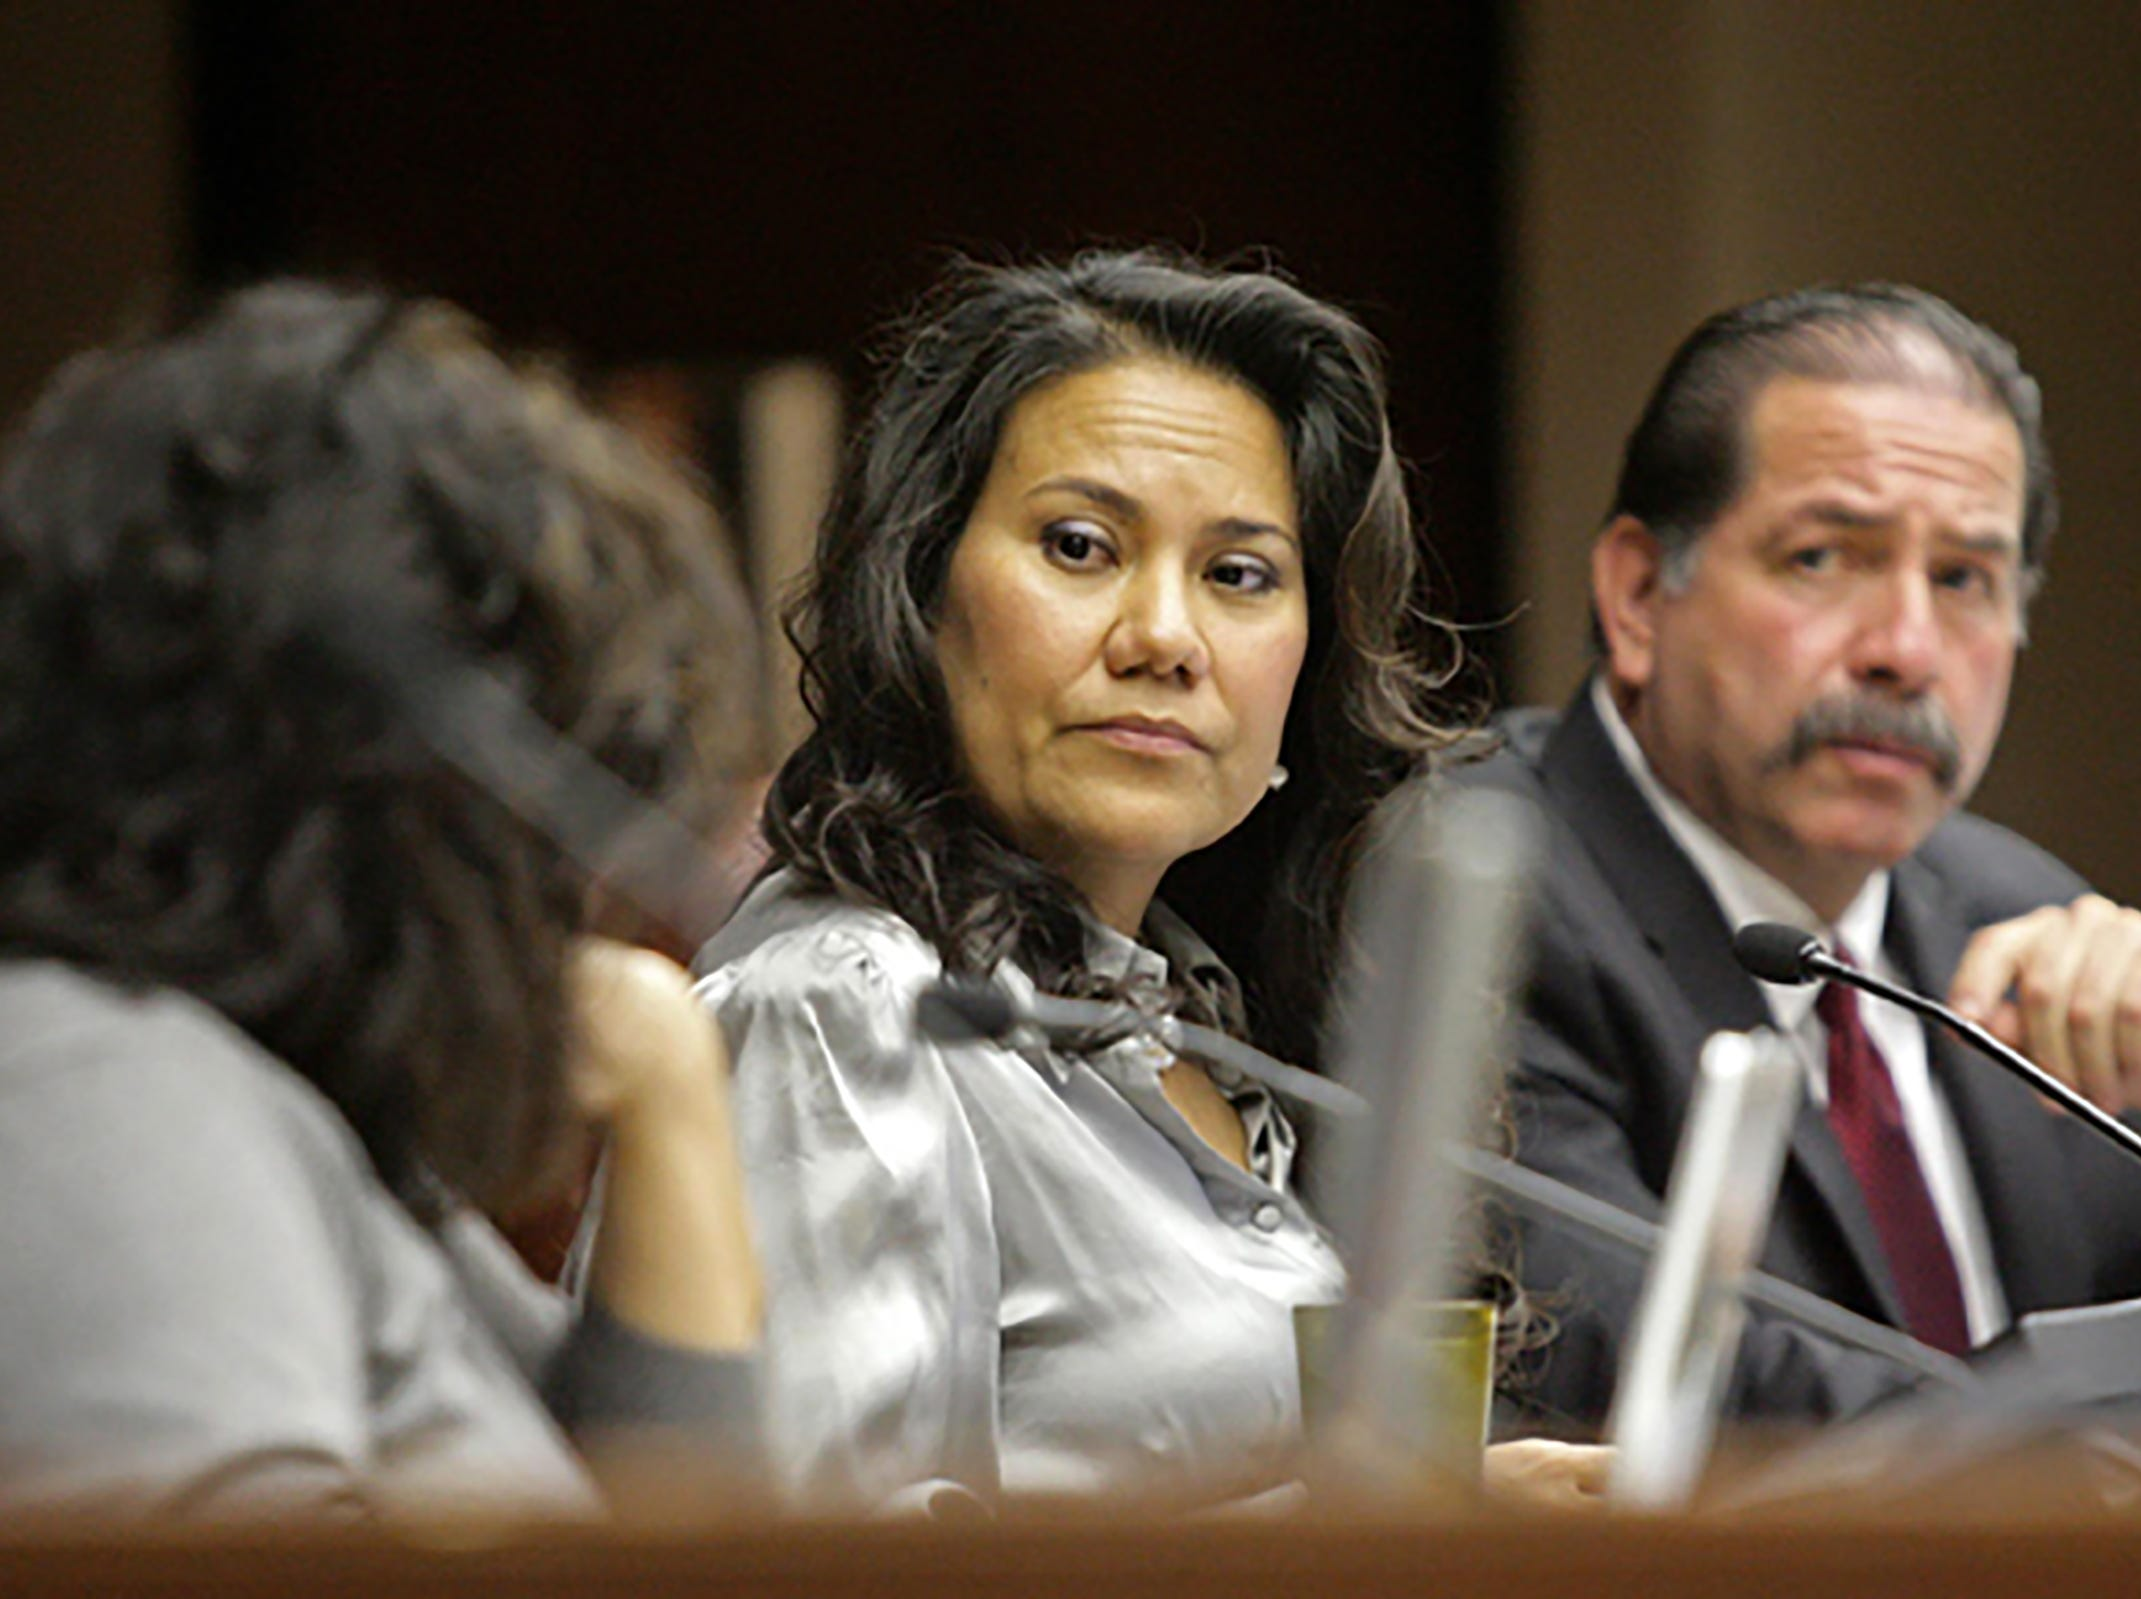 County Judge Veronica Escobar discusses the possible raising of taxes for the fiscal year that starts in October, with commissioner Anna Perez as commissioner Sergio Lewis listens on, to cover the shortfall for the El Paso County Hospital District. CEO Jim Valenti told commissioners court the hospital district has not raised taxes for operations in the past five years.